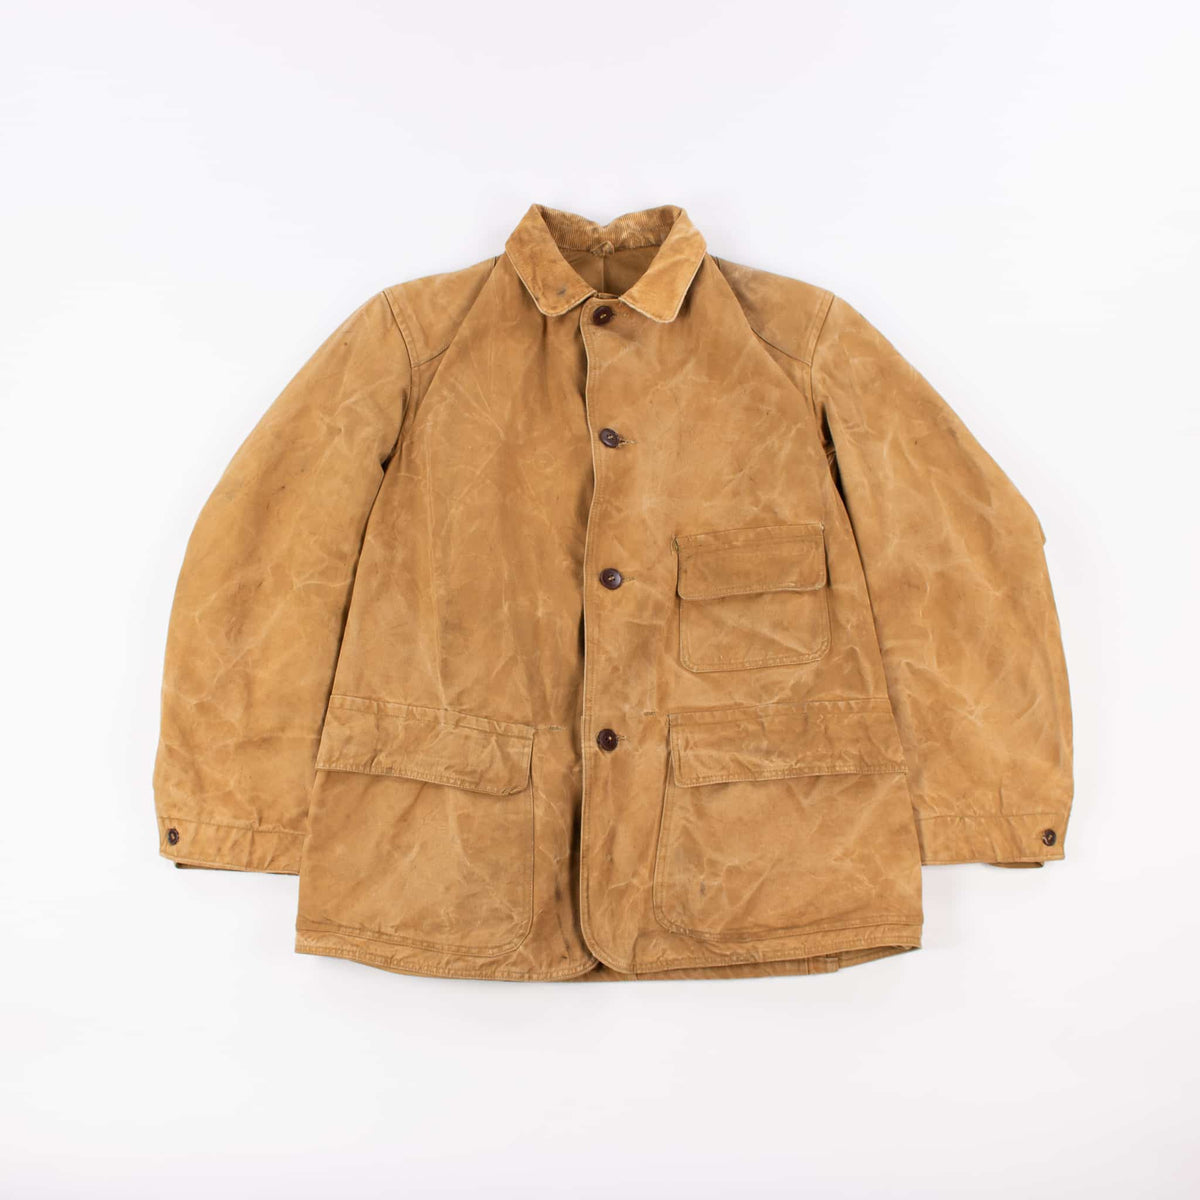 9a20a0530cb0d Vintage 1940's Weatherbak Duck Hunting Jacket